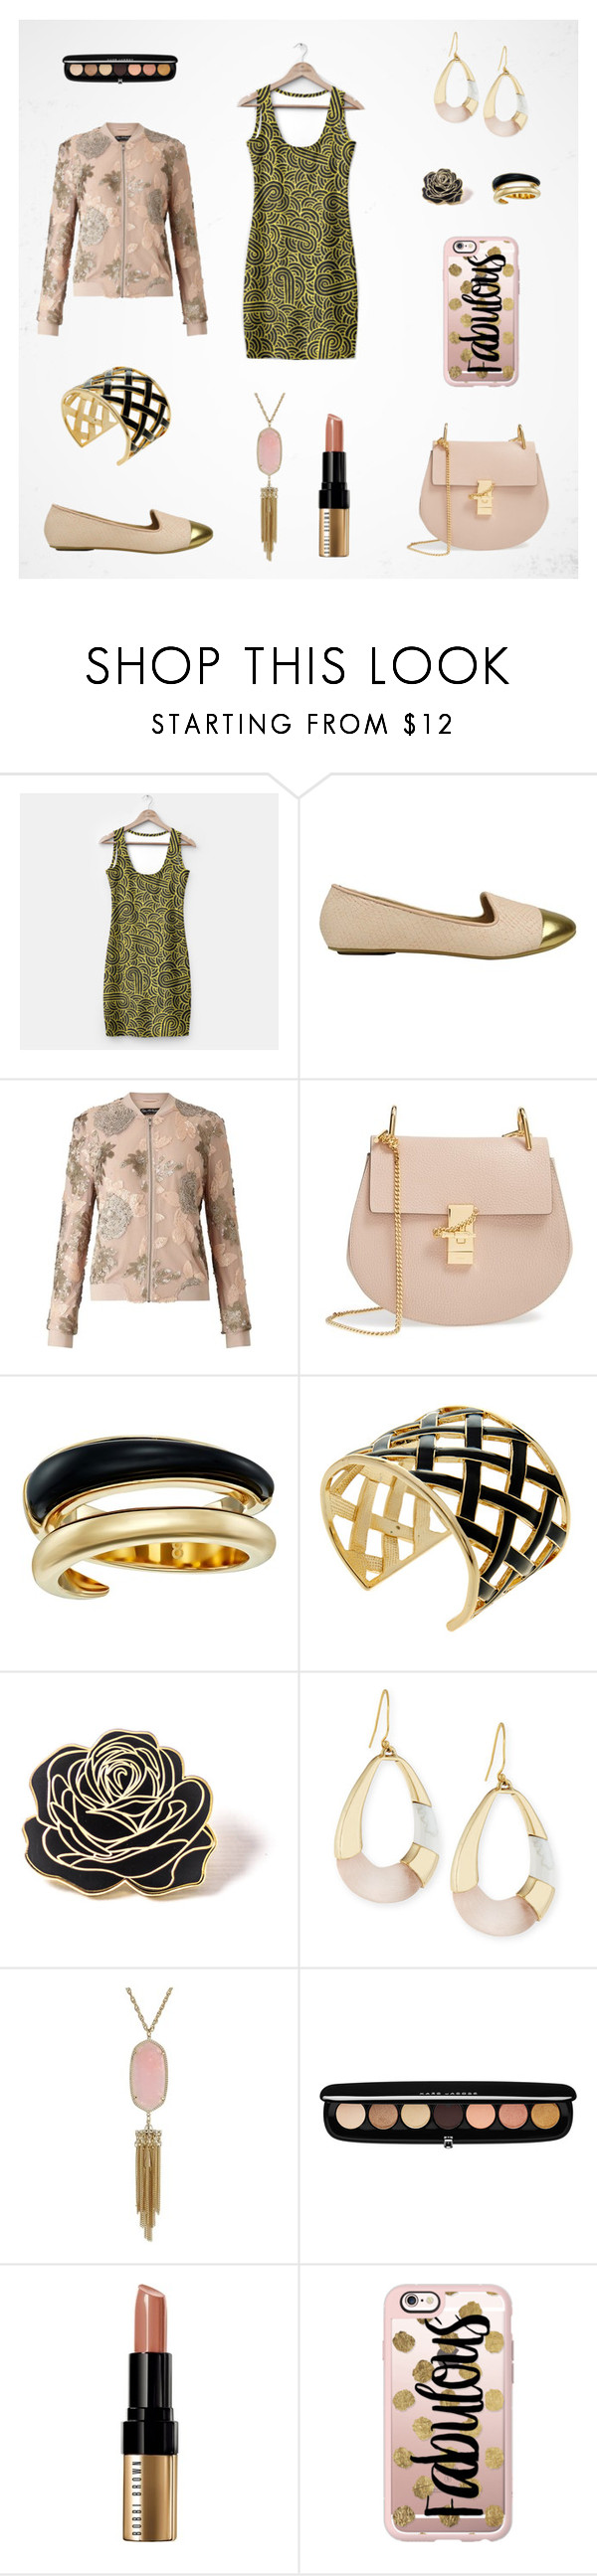 Blush, Black & Gold women outfit set by @savousepate on Polyvore